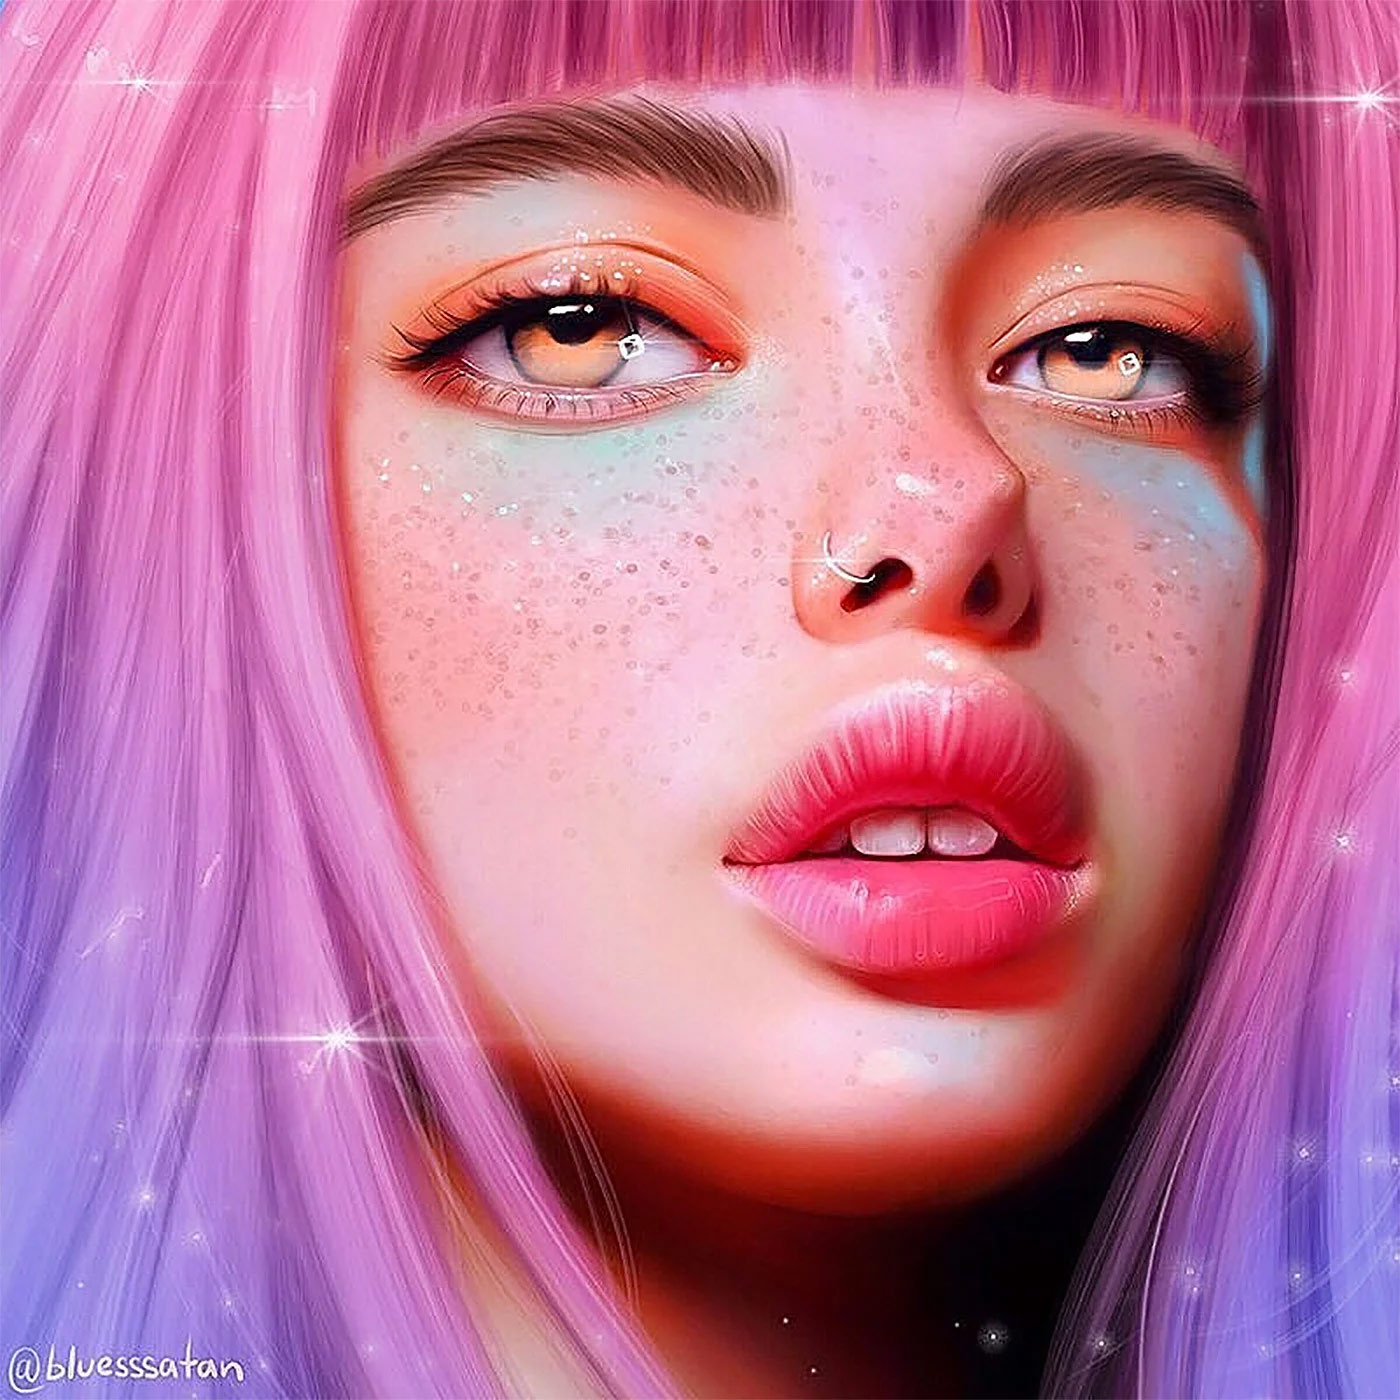 Digital Paintings: Julia Razumova Julia-Razumova_03